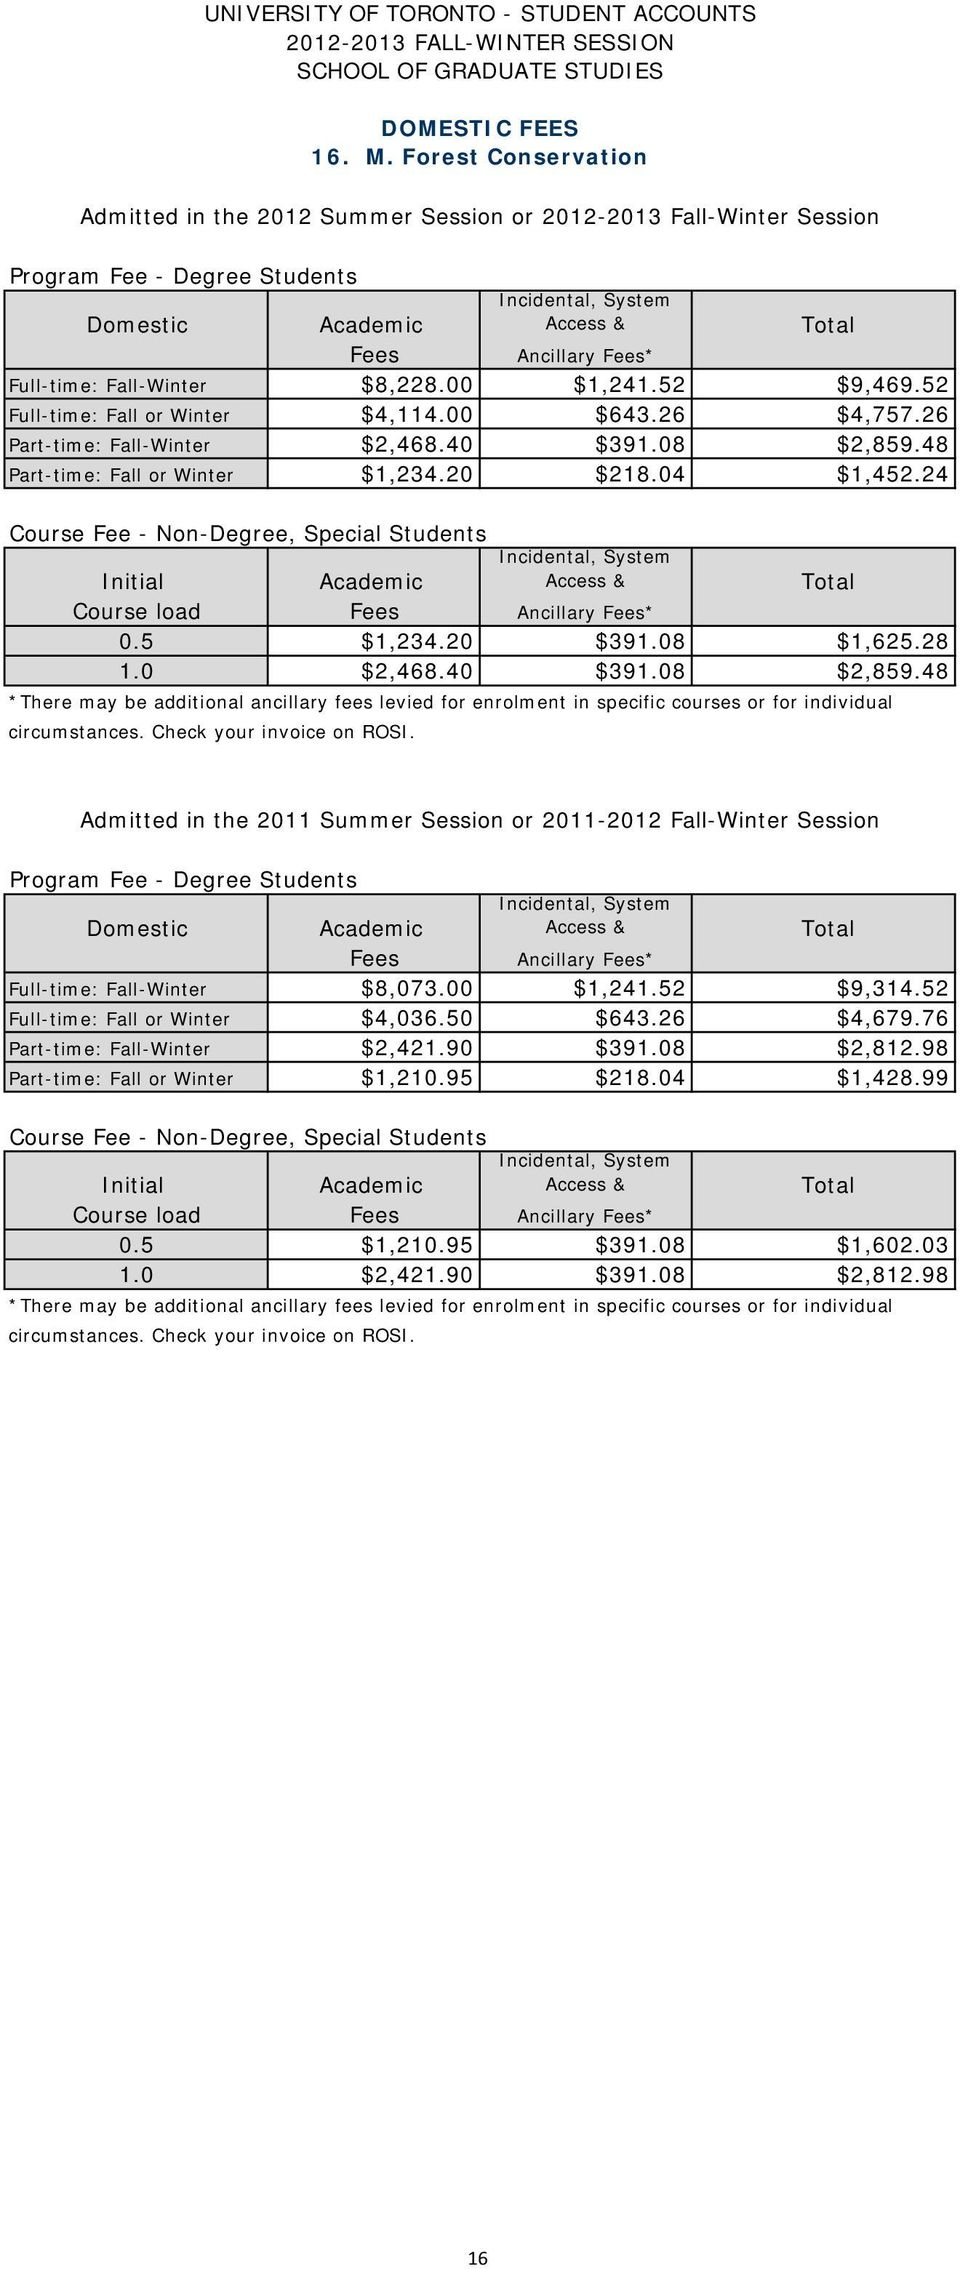 00 $1,241.52 $9,314.52 Full-time: Fall or Winter $4,036.50 $643.26 $4,679.76 Part-time: Fall-Winter $2,421.90 $391.08 $2,812.98 Part-time: Fall or Winter $1,210.95 $218.04 $1,428.